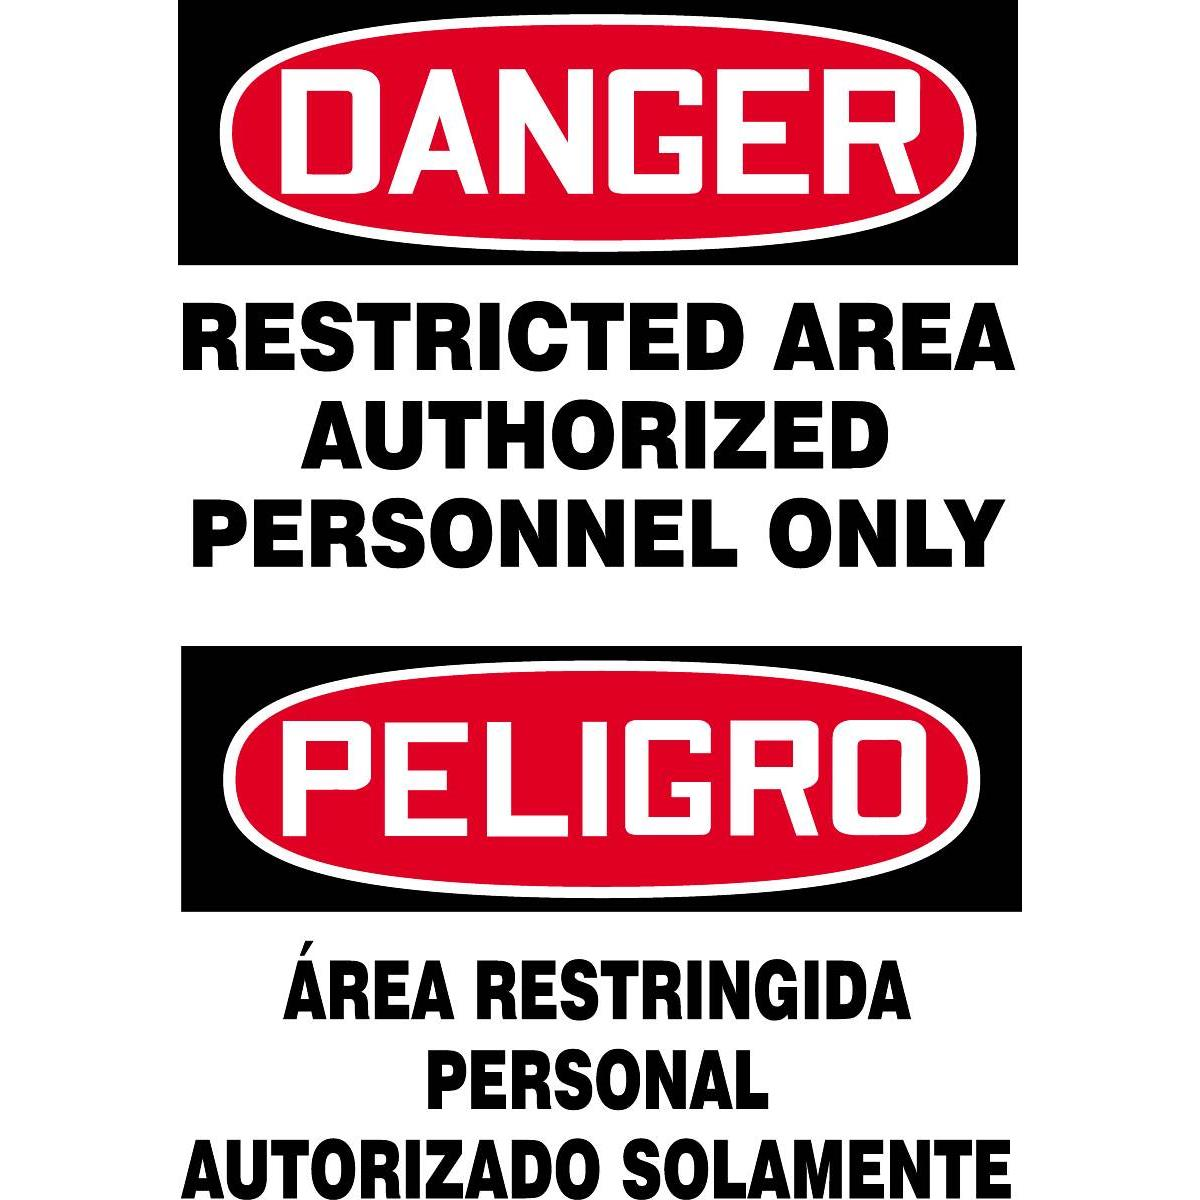 Bilingual Danger / Restricted Area Authorized Personnel Only Sign